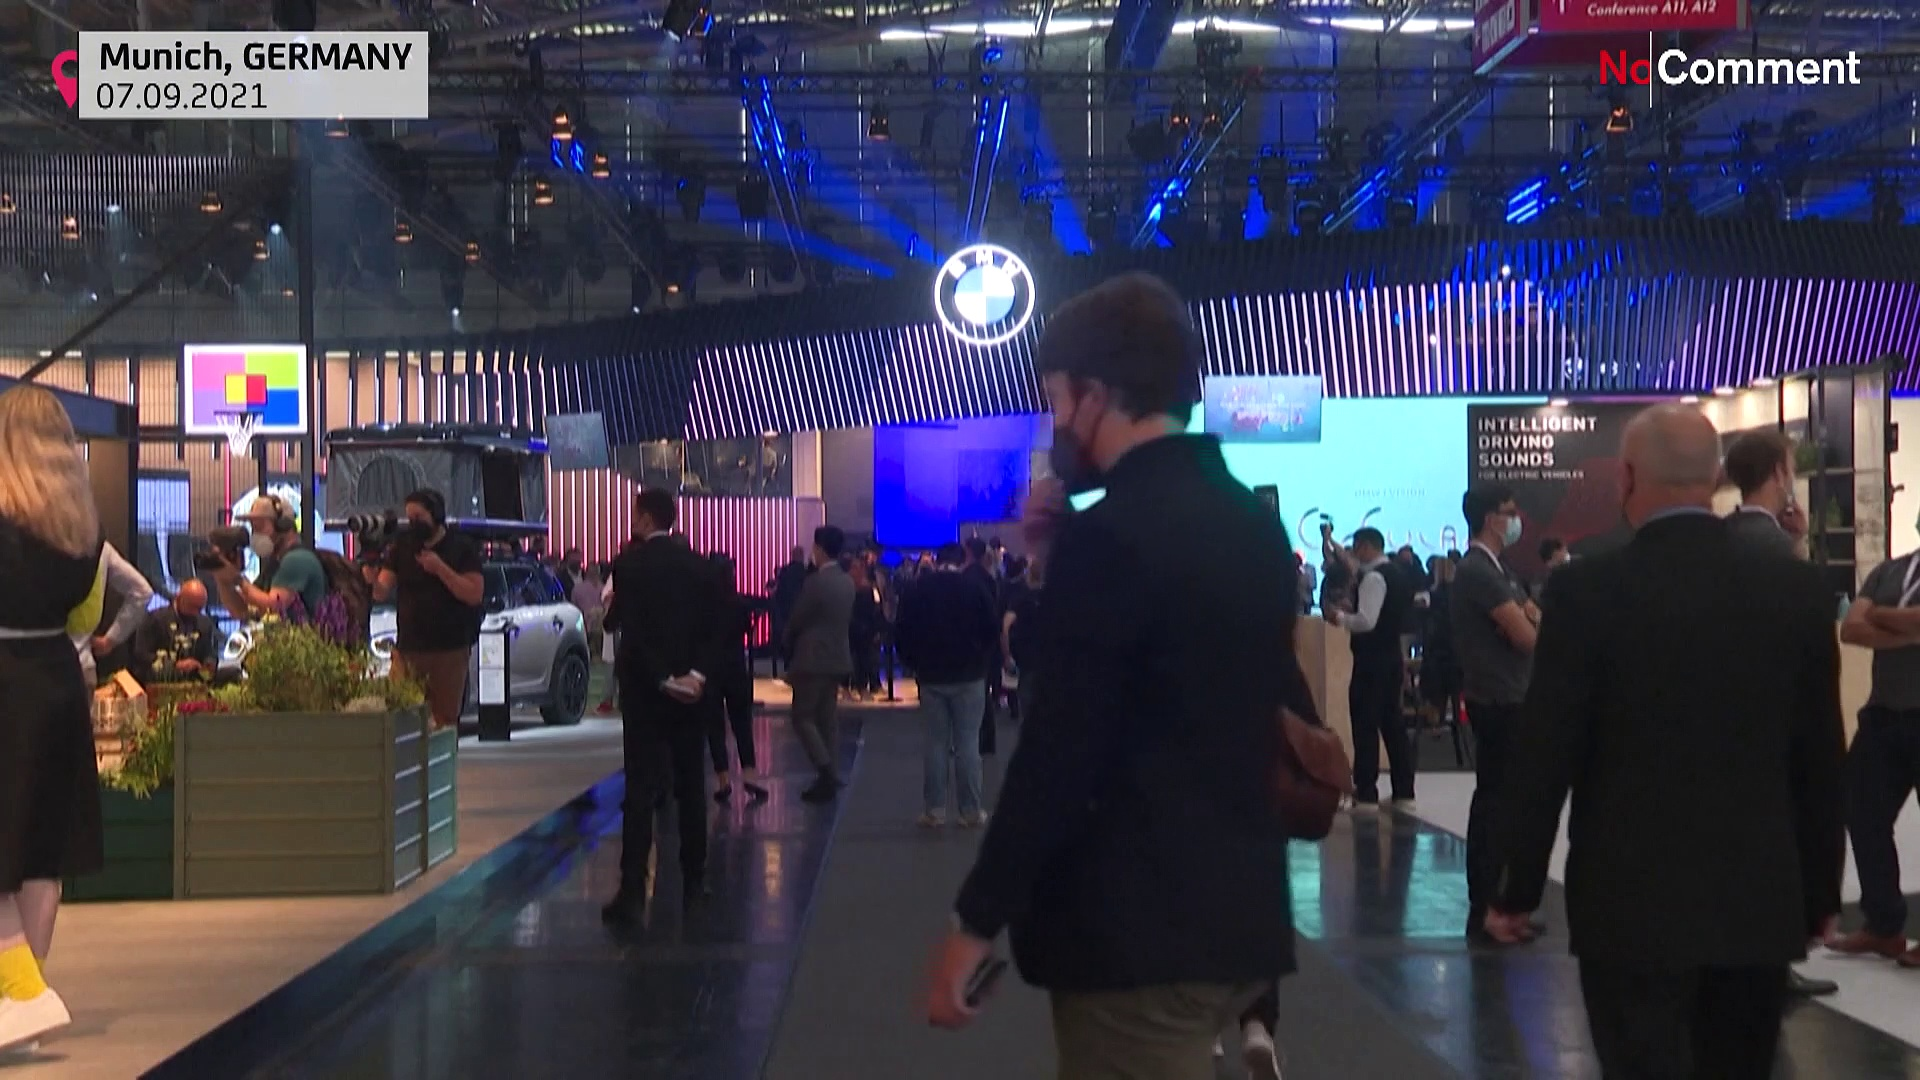 The IAA mobility show opens for the first time in Munich presenting new prototypes and models